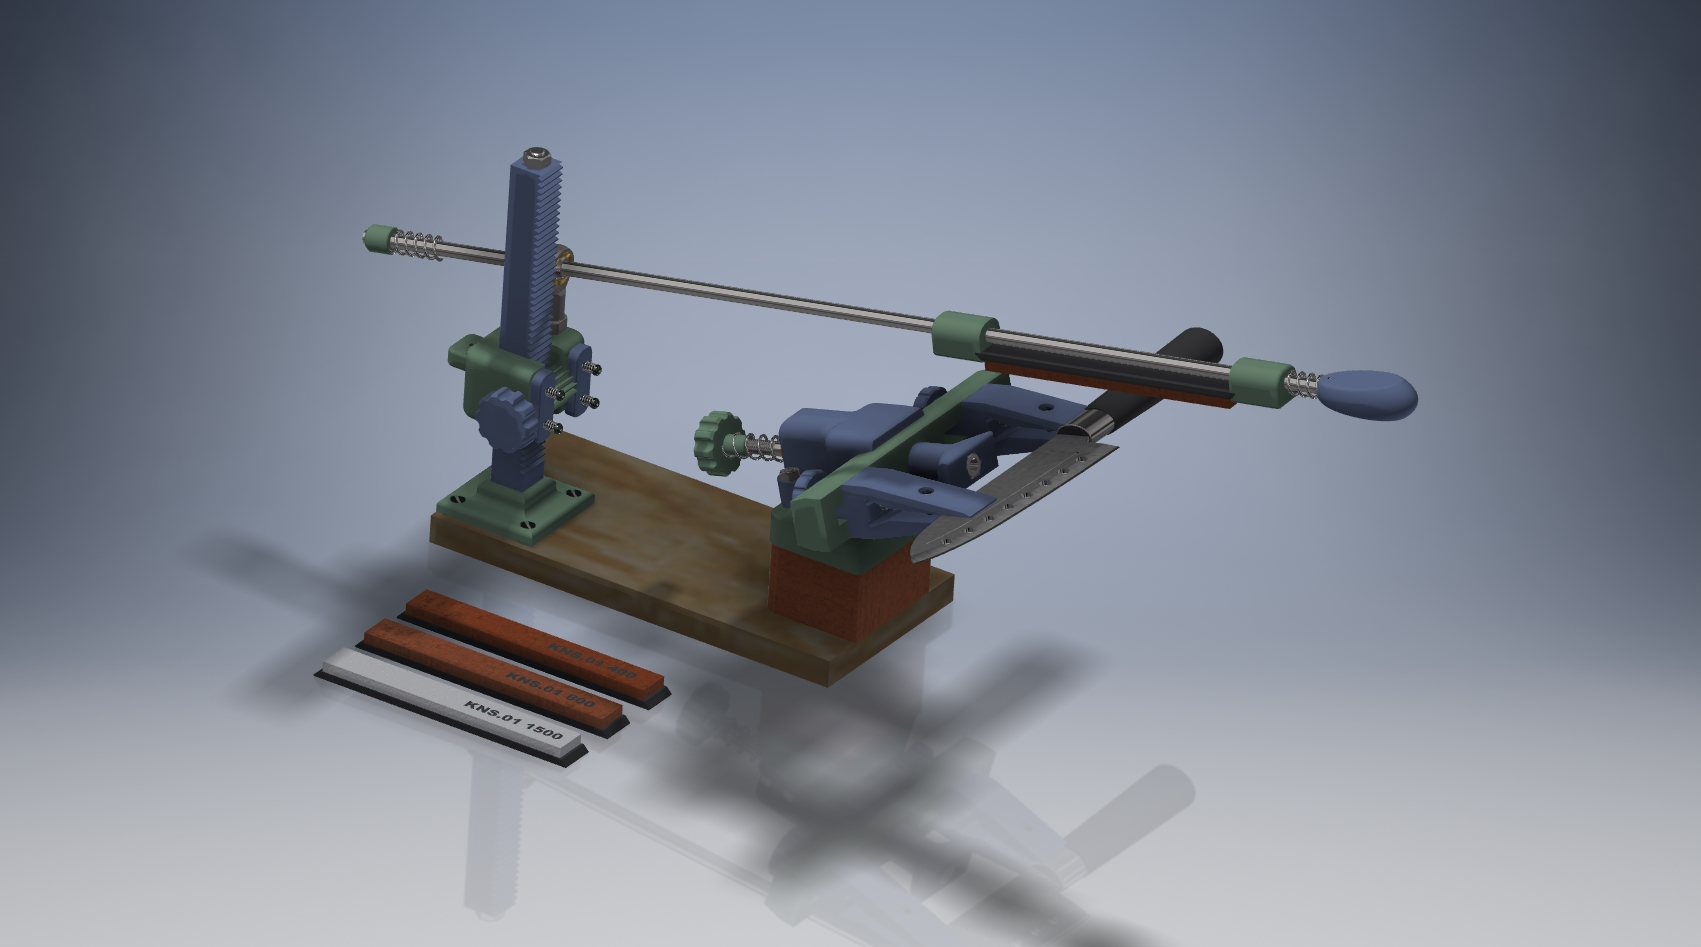 3D model, Chucha-LIGHT Grinding Machine for KNIVES